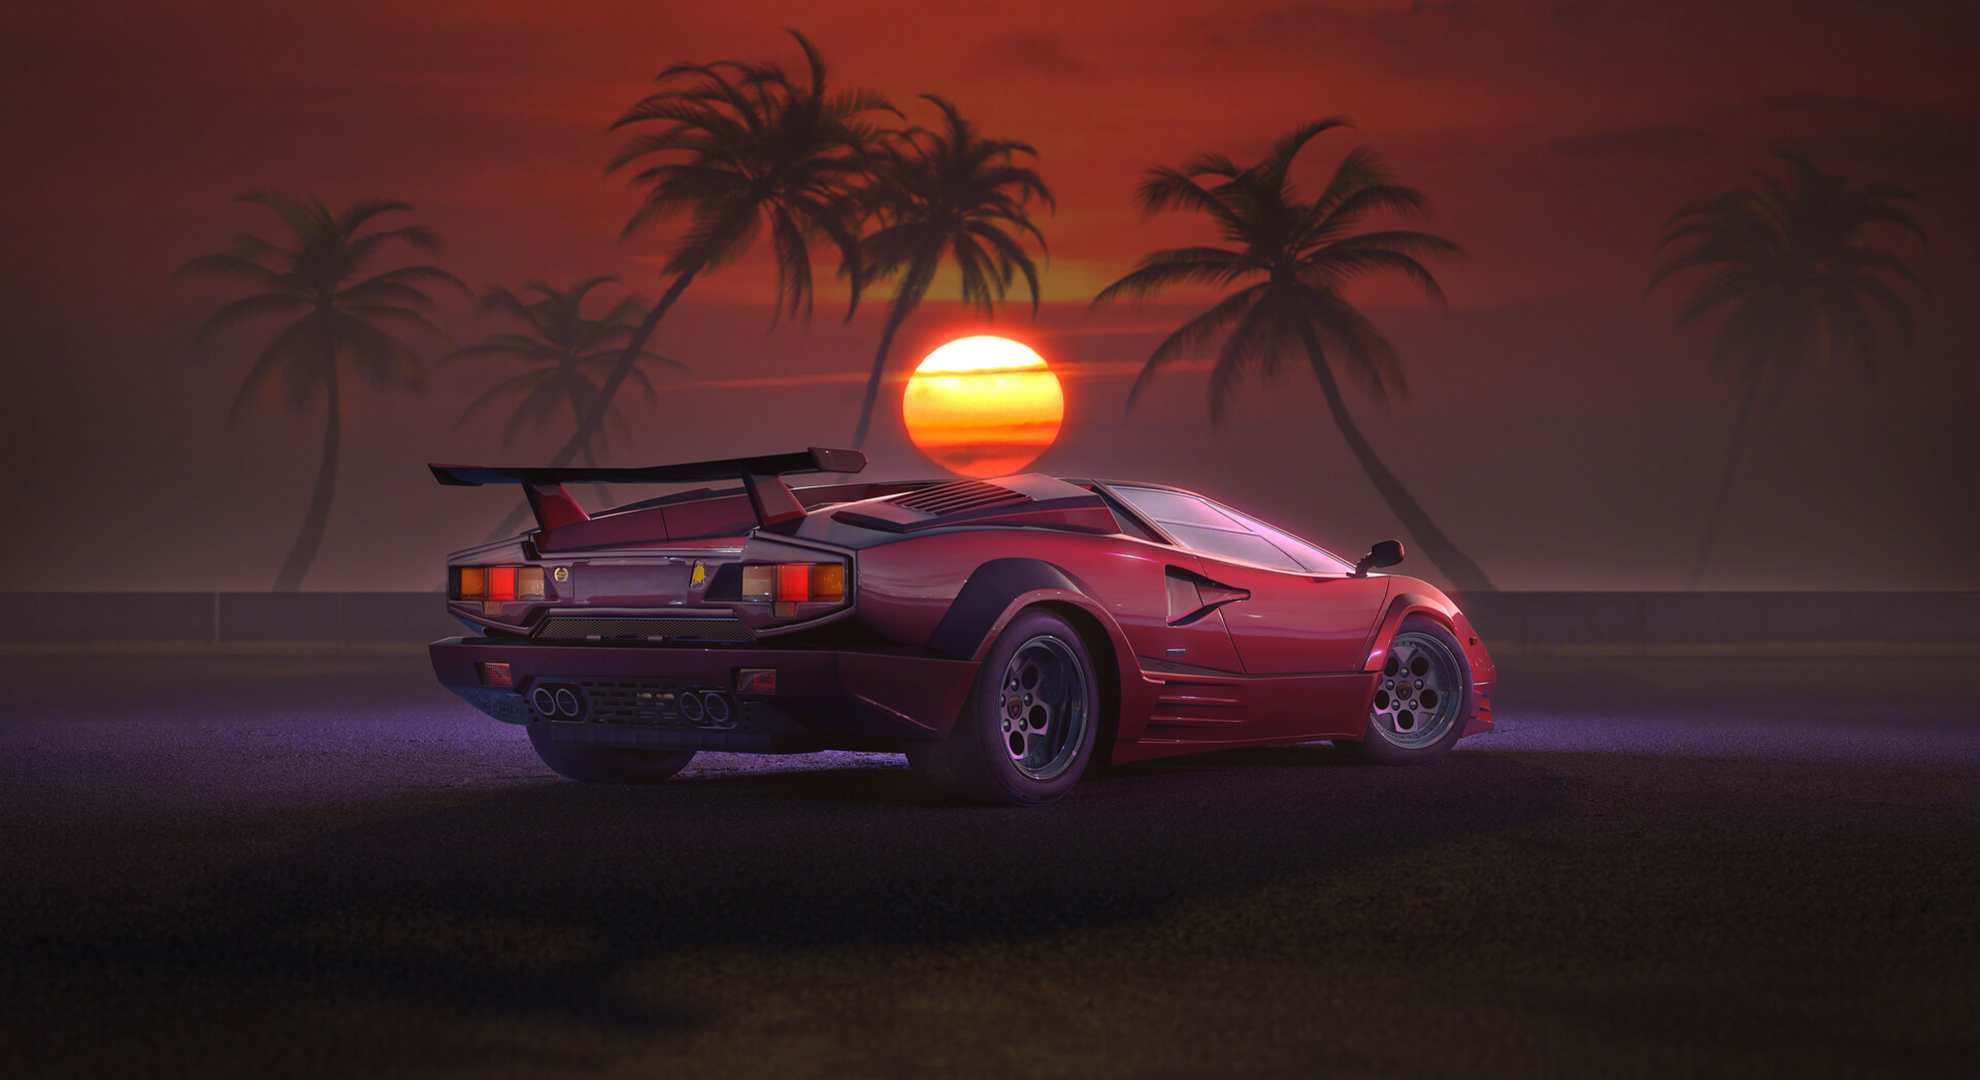 Lamborghini Countach 1920x1080 Lamborghini Countach Lamborghini Red Car